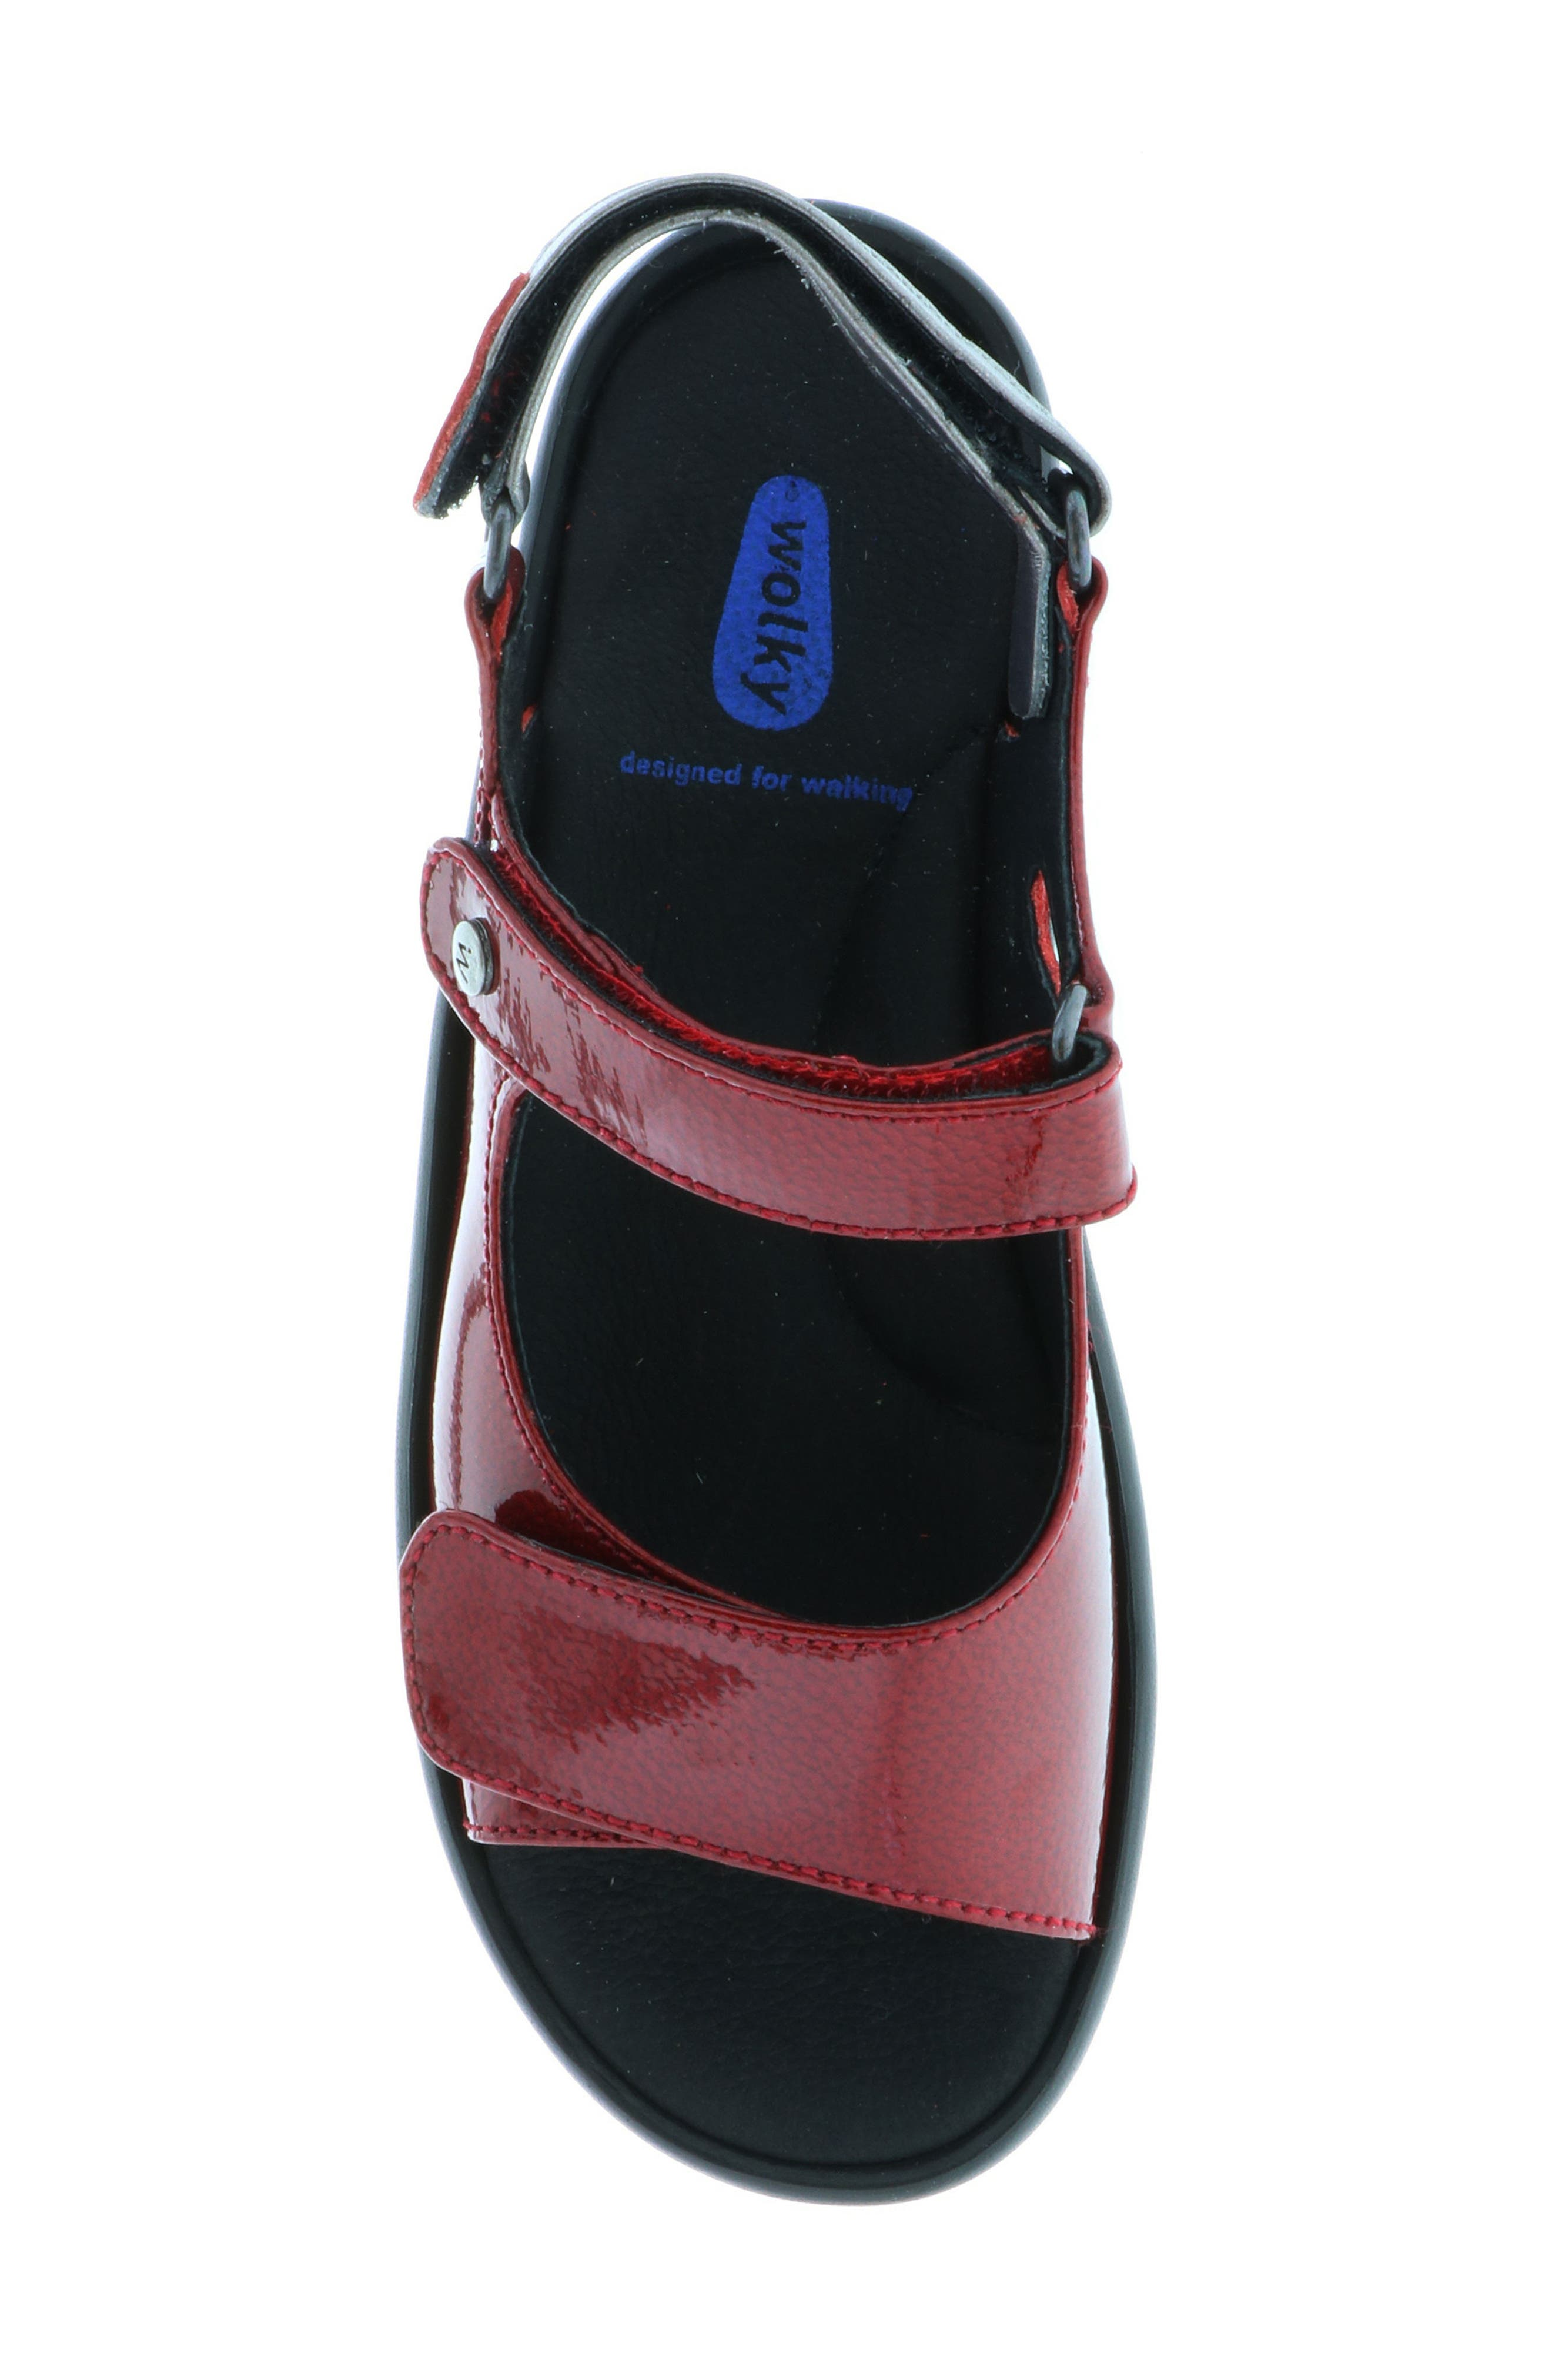 Rio Sandal,                             Alternate thumbnail 4, color,                             Red Patent Leather